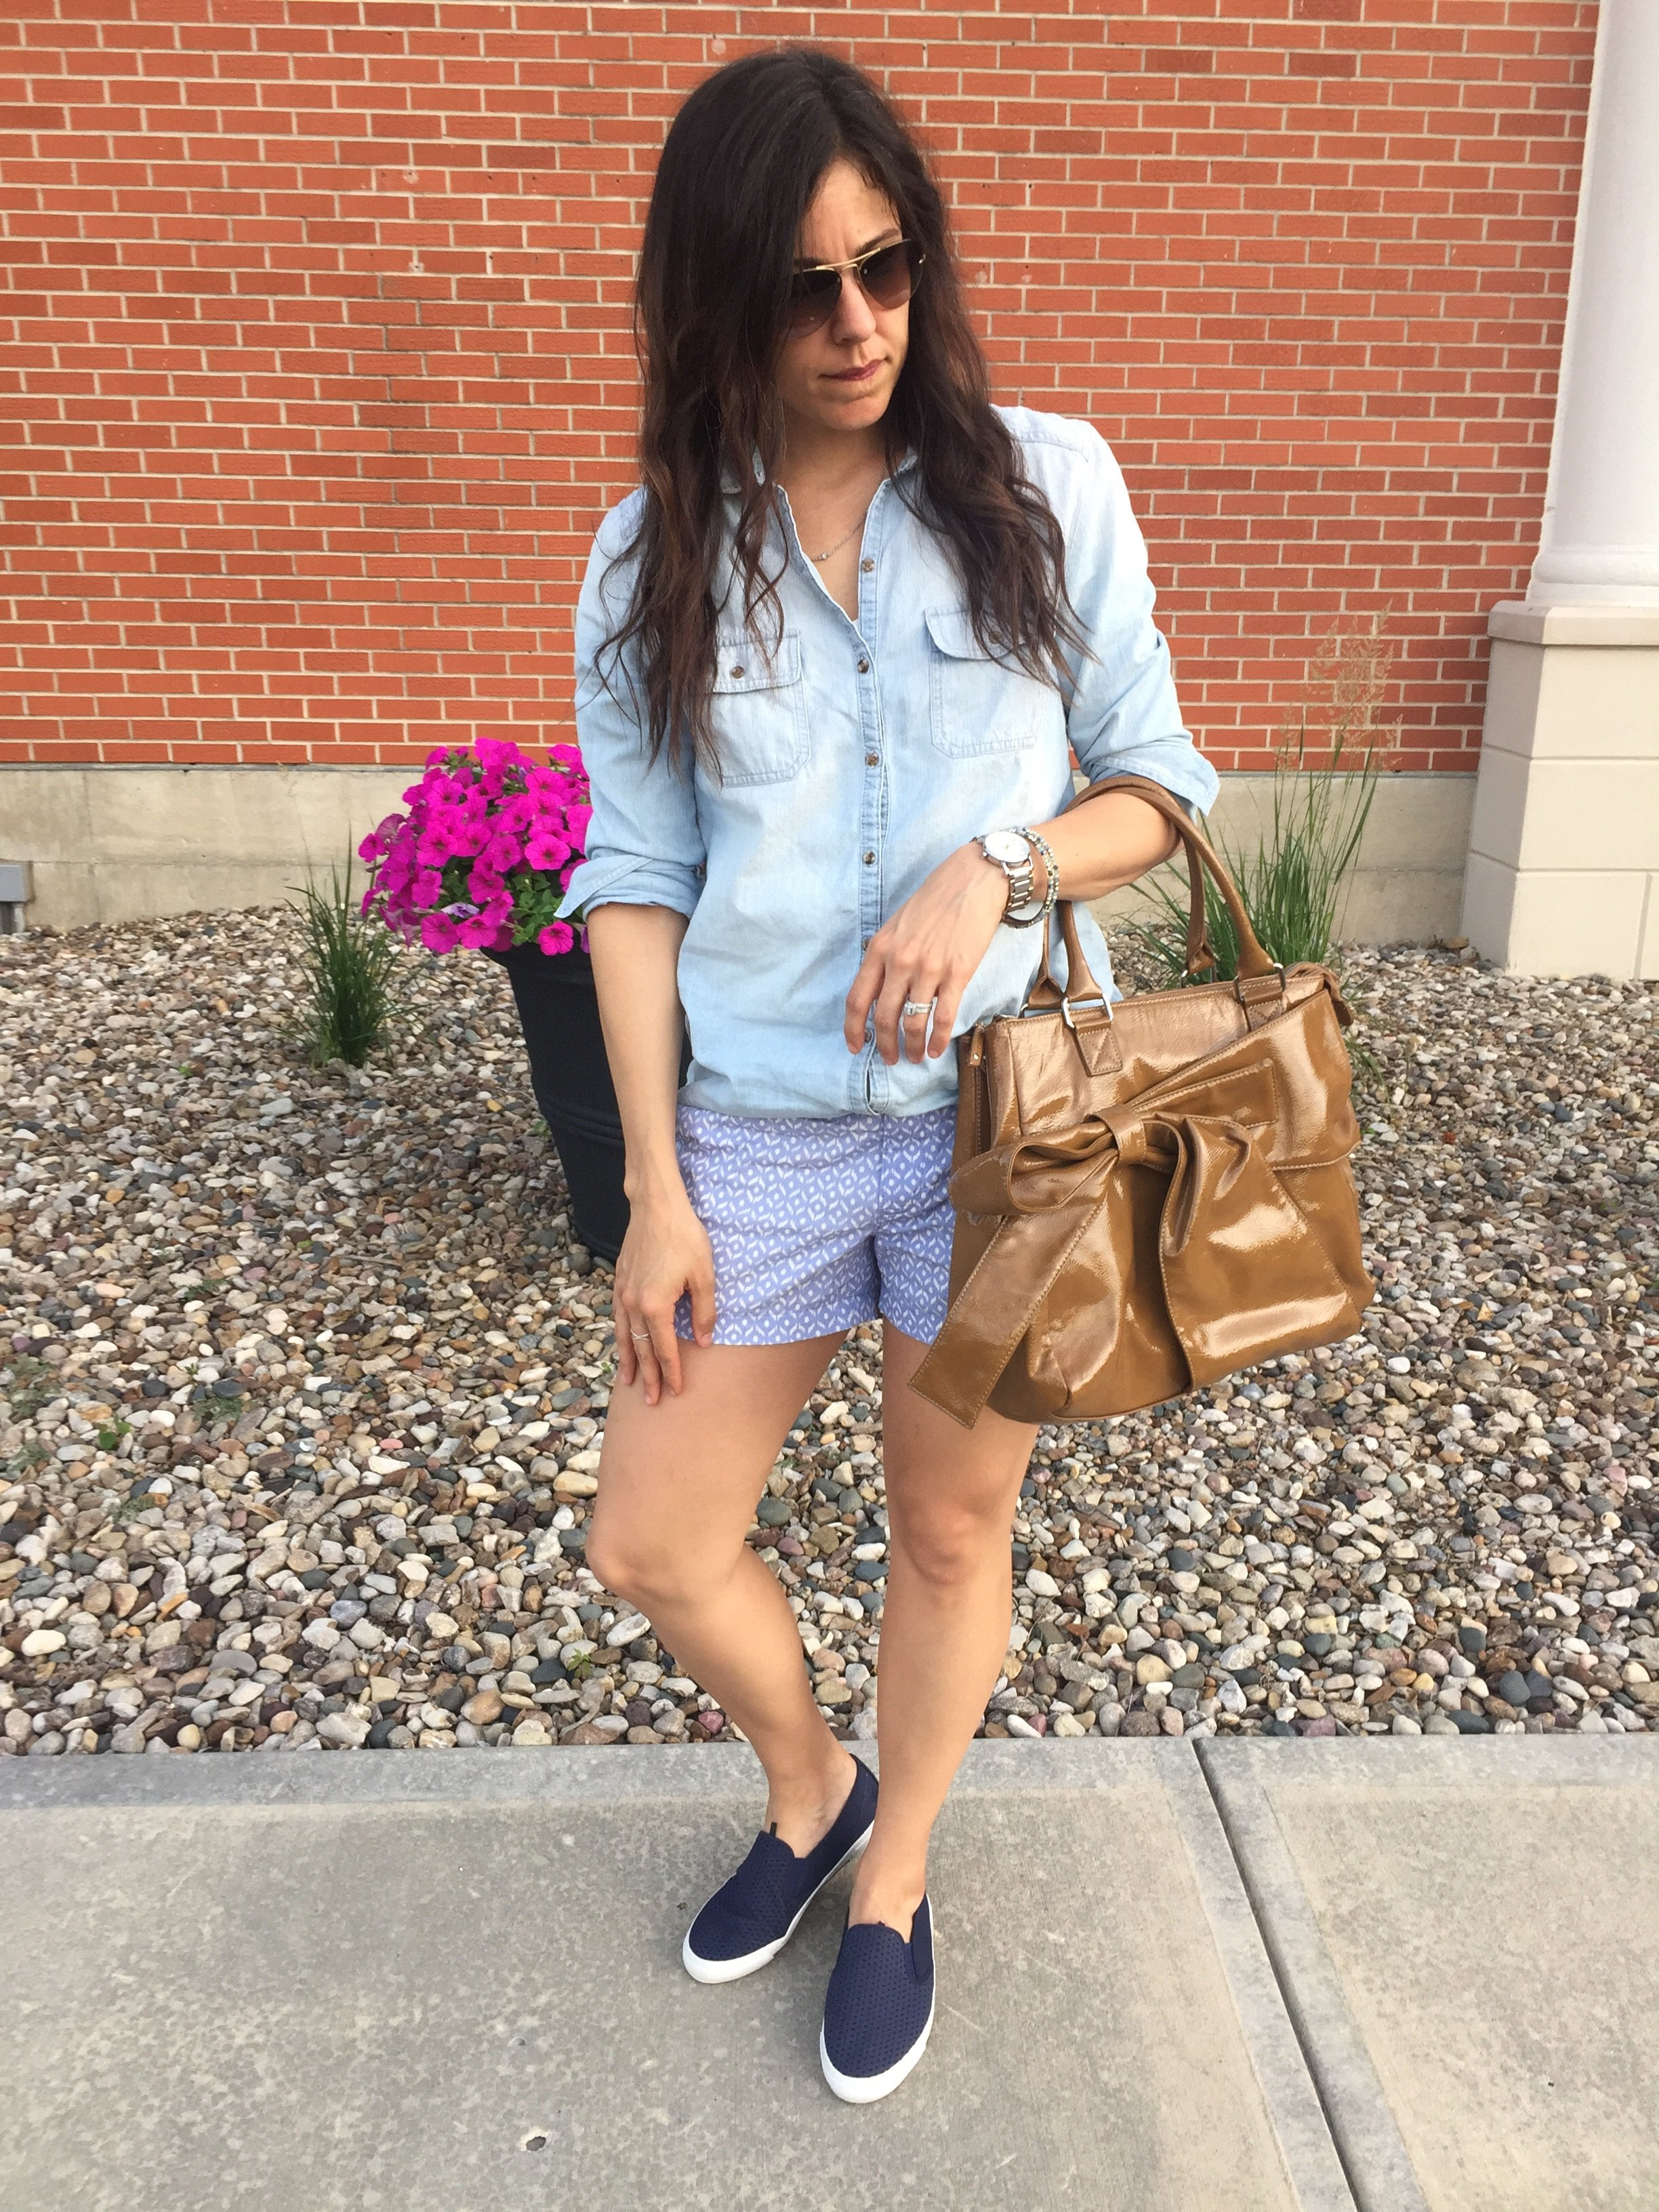 How to style colored shorts | summer fashion style | warm weather fashion tips | chambray shirt outfit | print shorts outfit